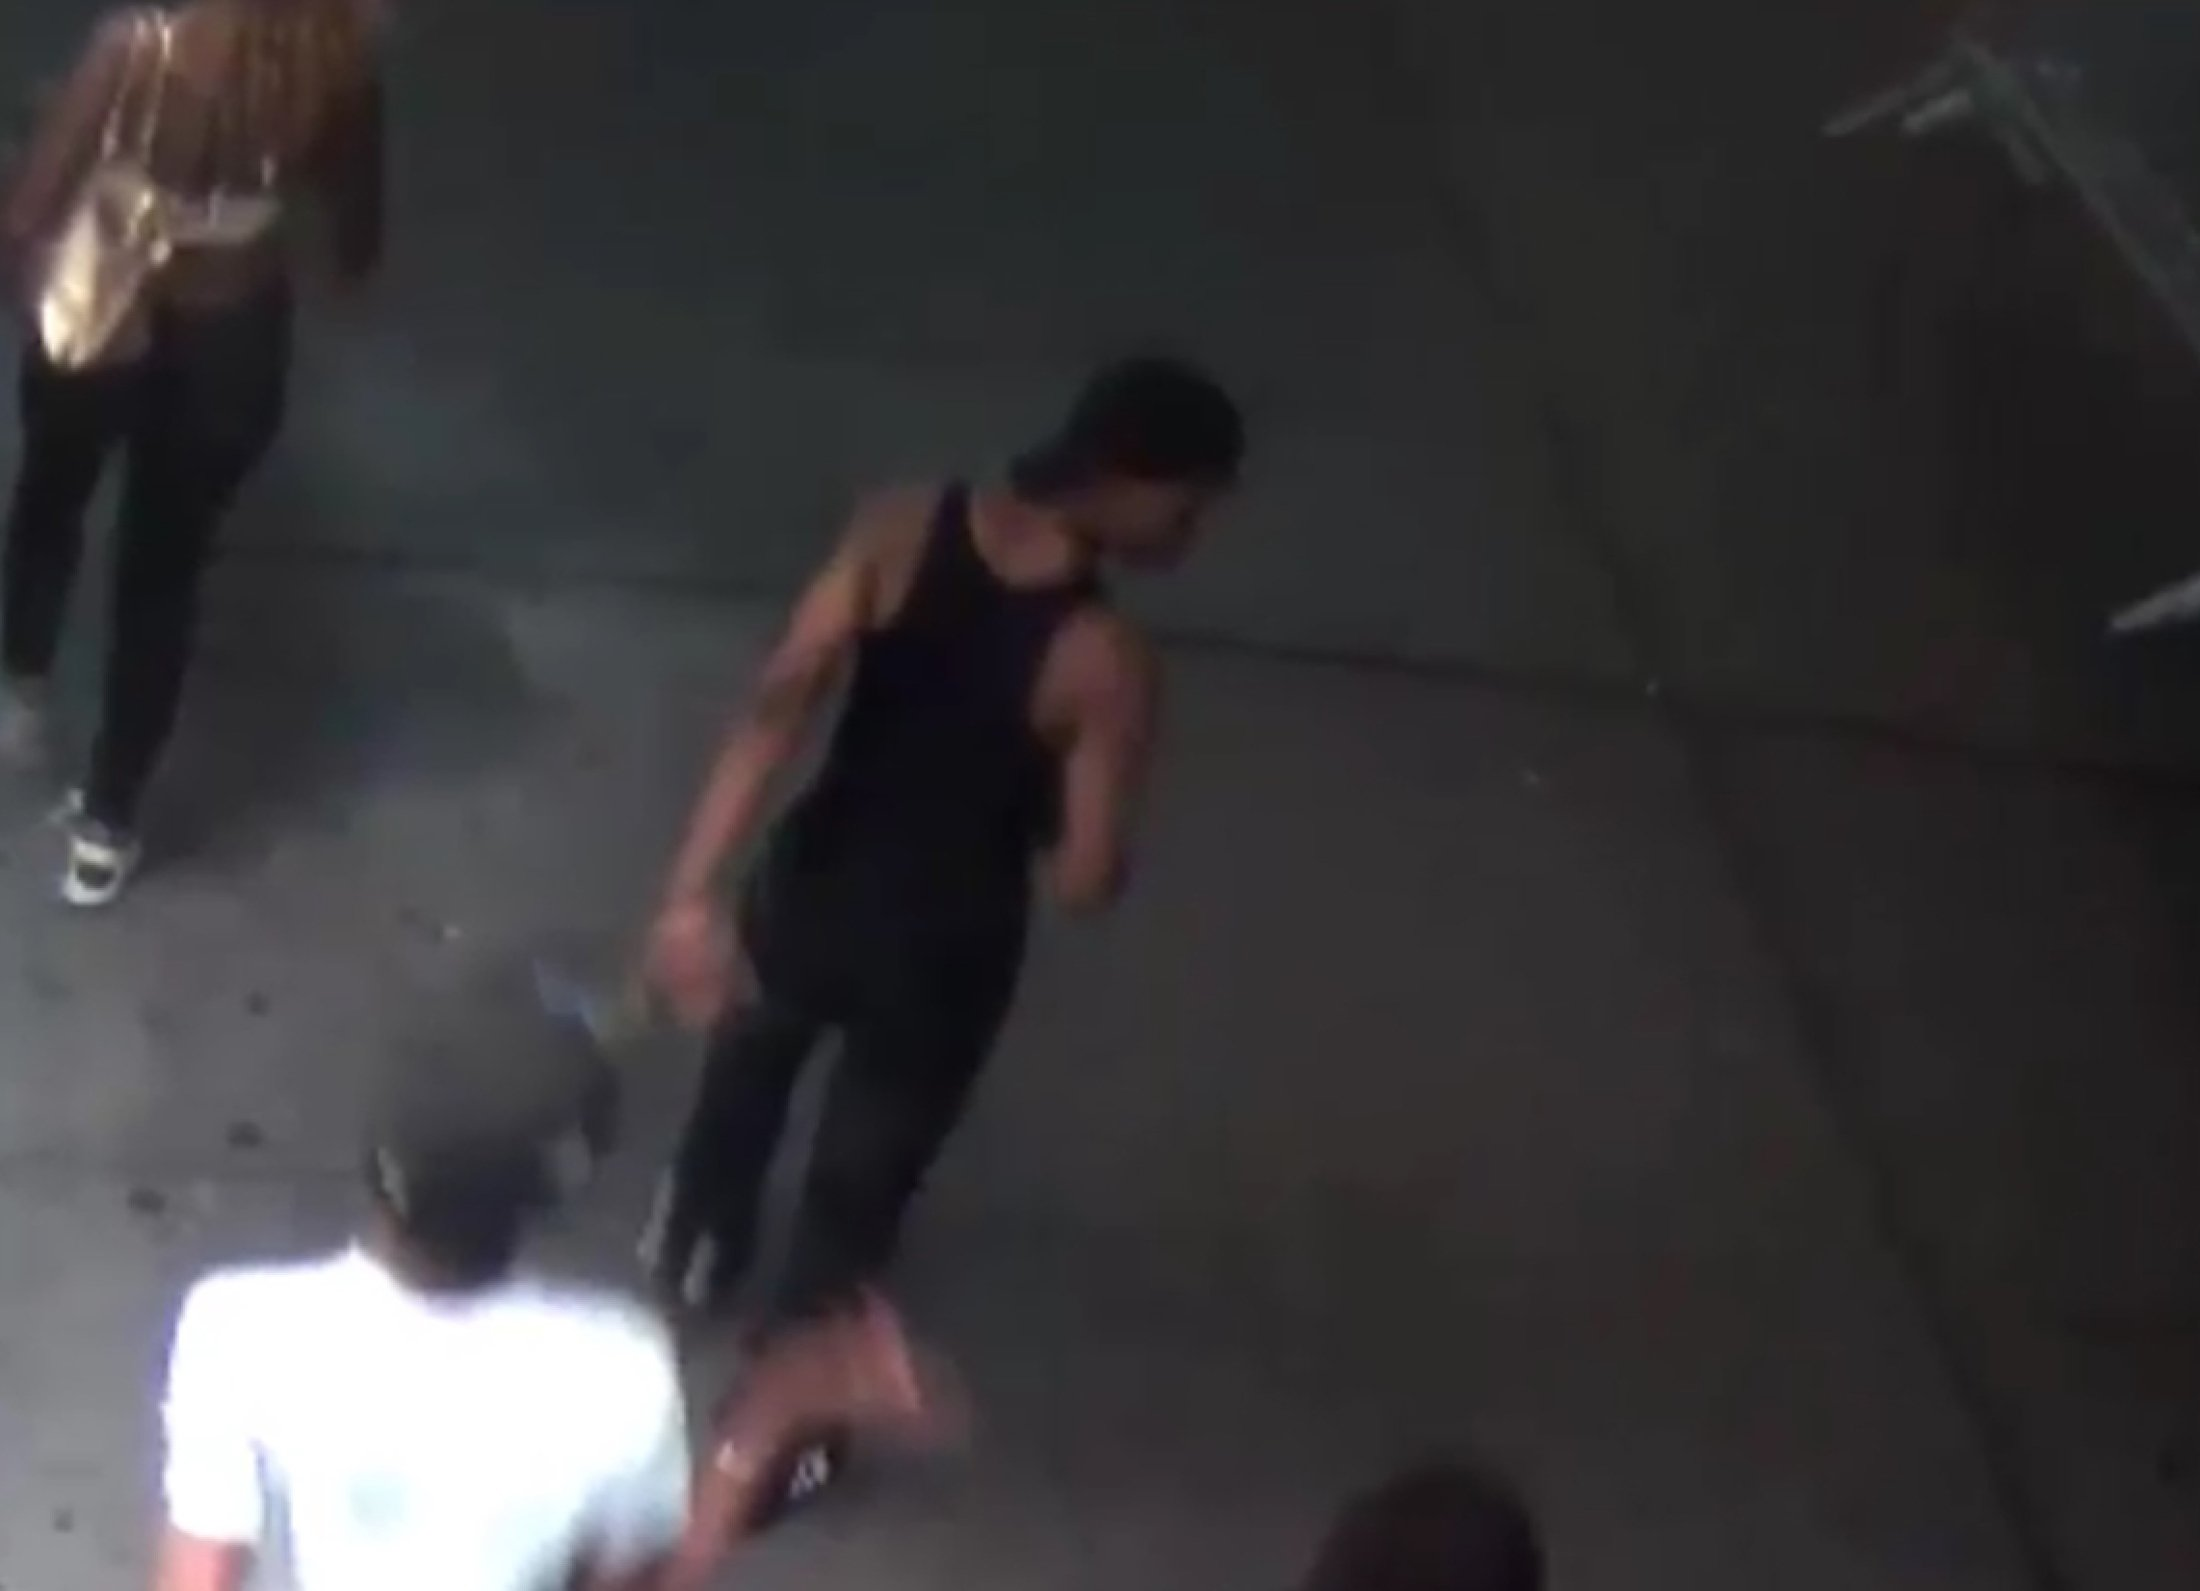 New York Police released a video of a man, seen in this still image taken from that video, suspected of setting fire to a traditionally-dressed Muslim woman as she window shopped on Park Avenue, in New York, Sept. 13, 2016.